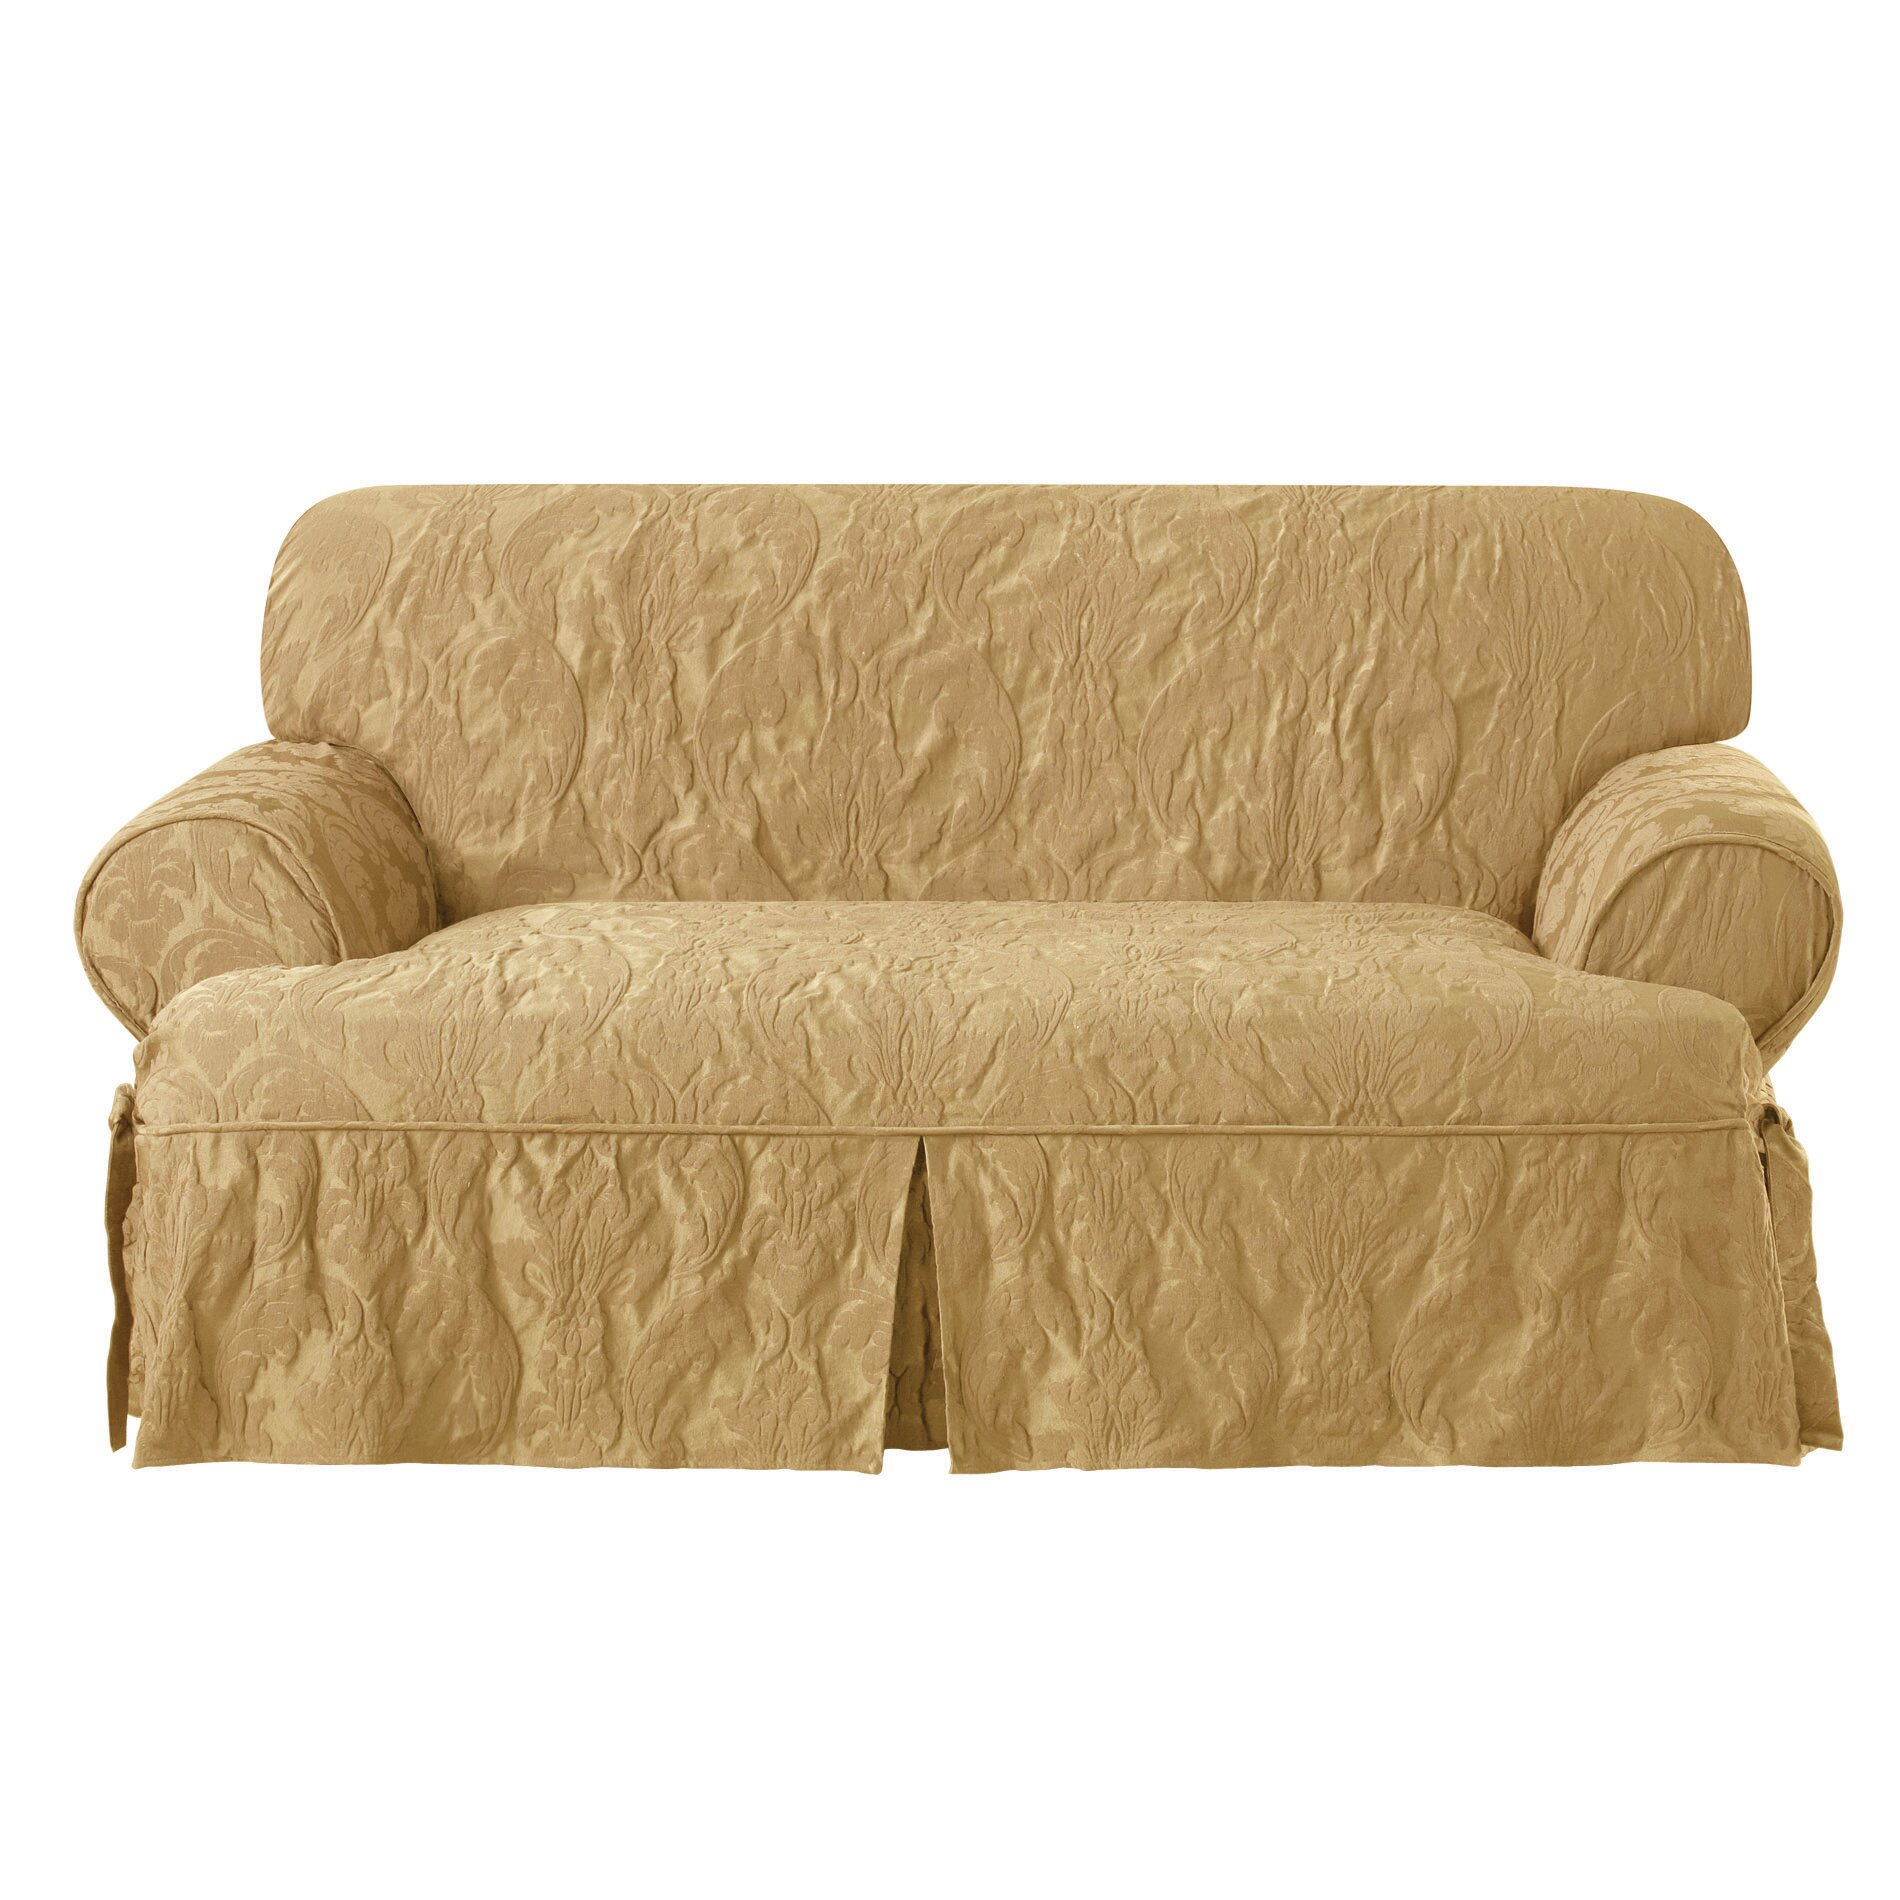 Sure fit t cushion loveseat slipcovers sure fit matelasse damask loveseat t cushion slipcover Loveseat cushion covers